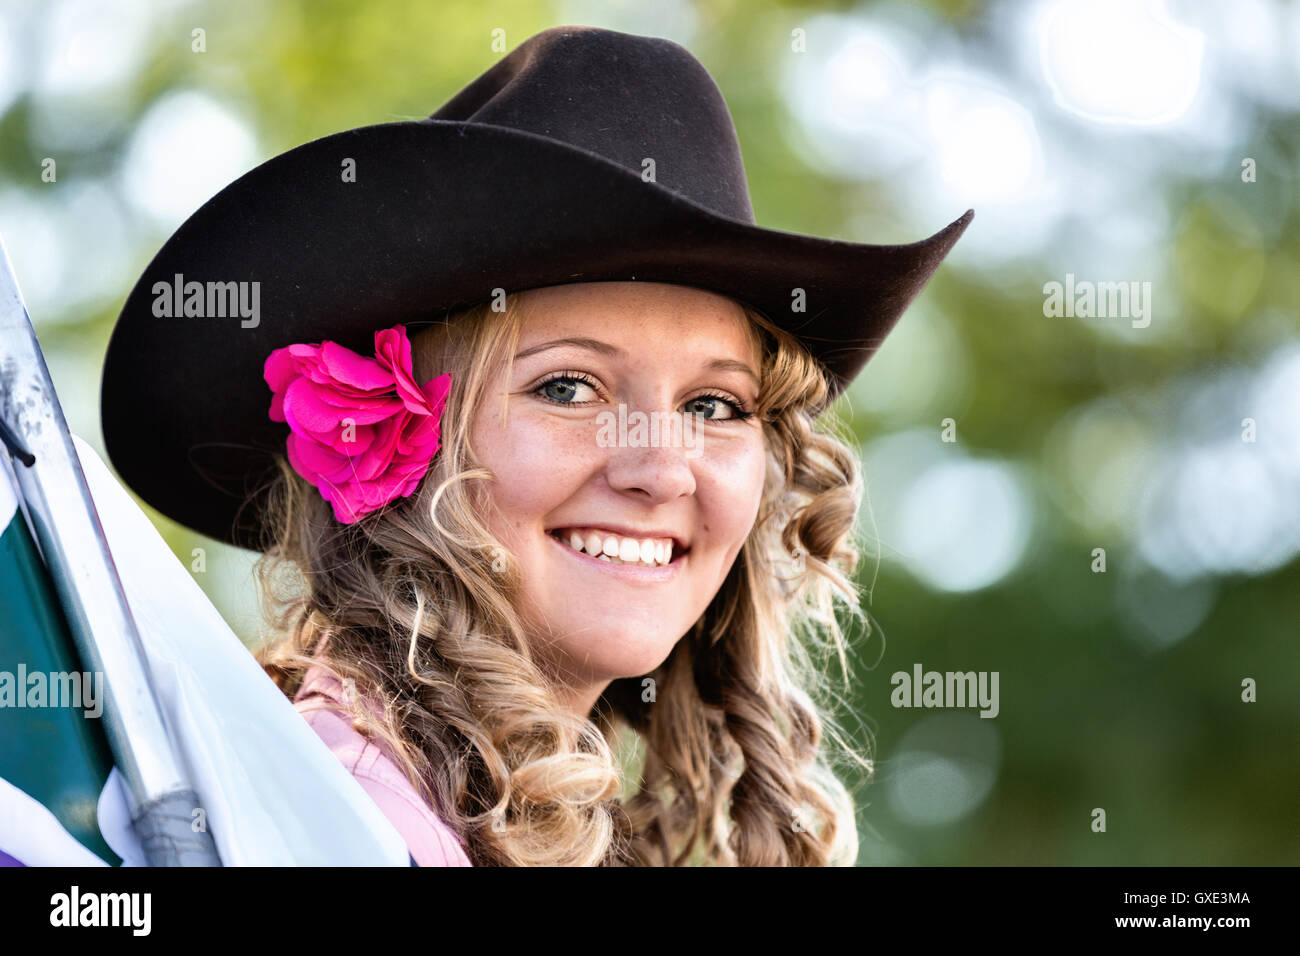 A young woman in cowboy hat smiles during the Cheyenne Frontier Days